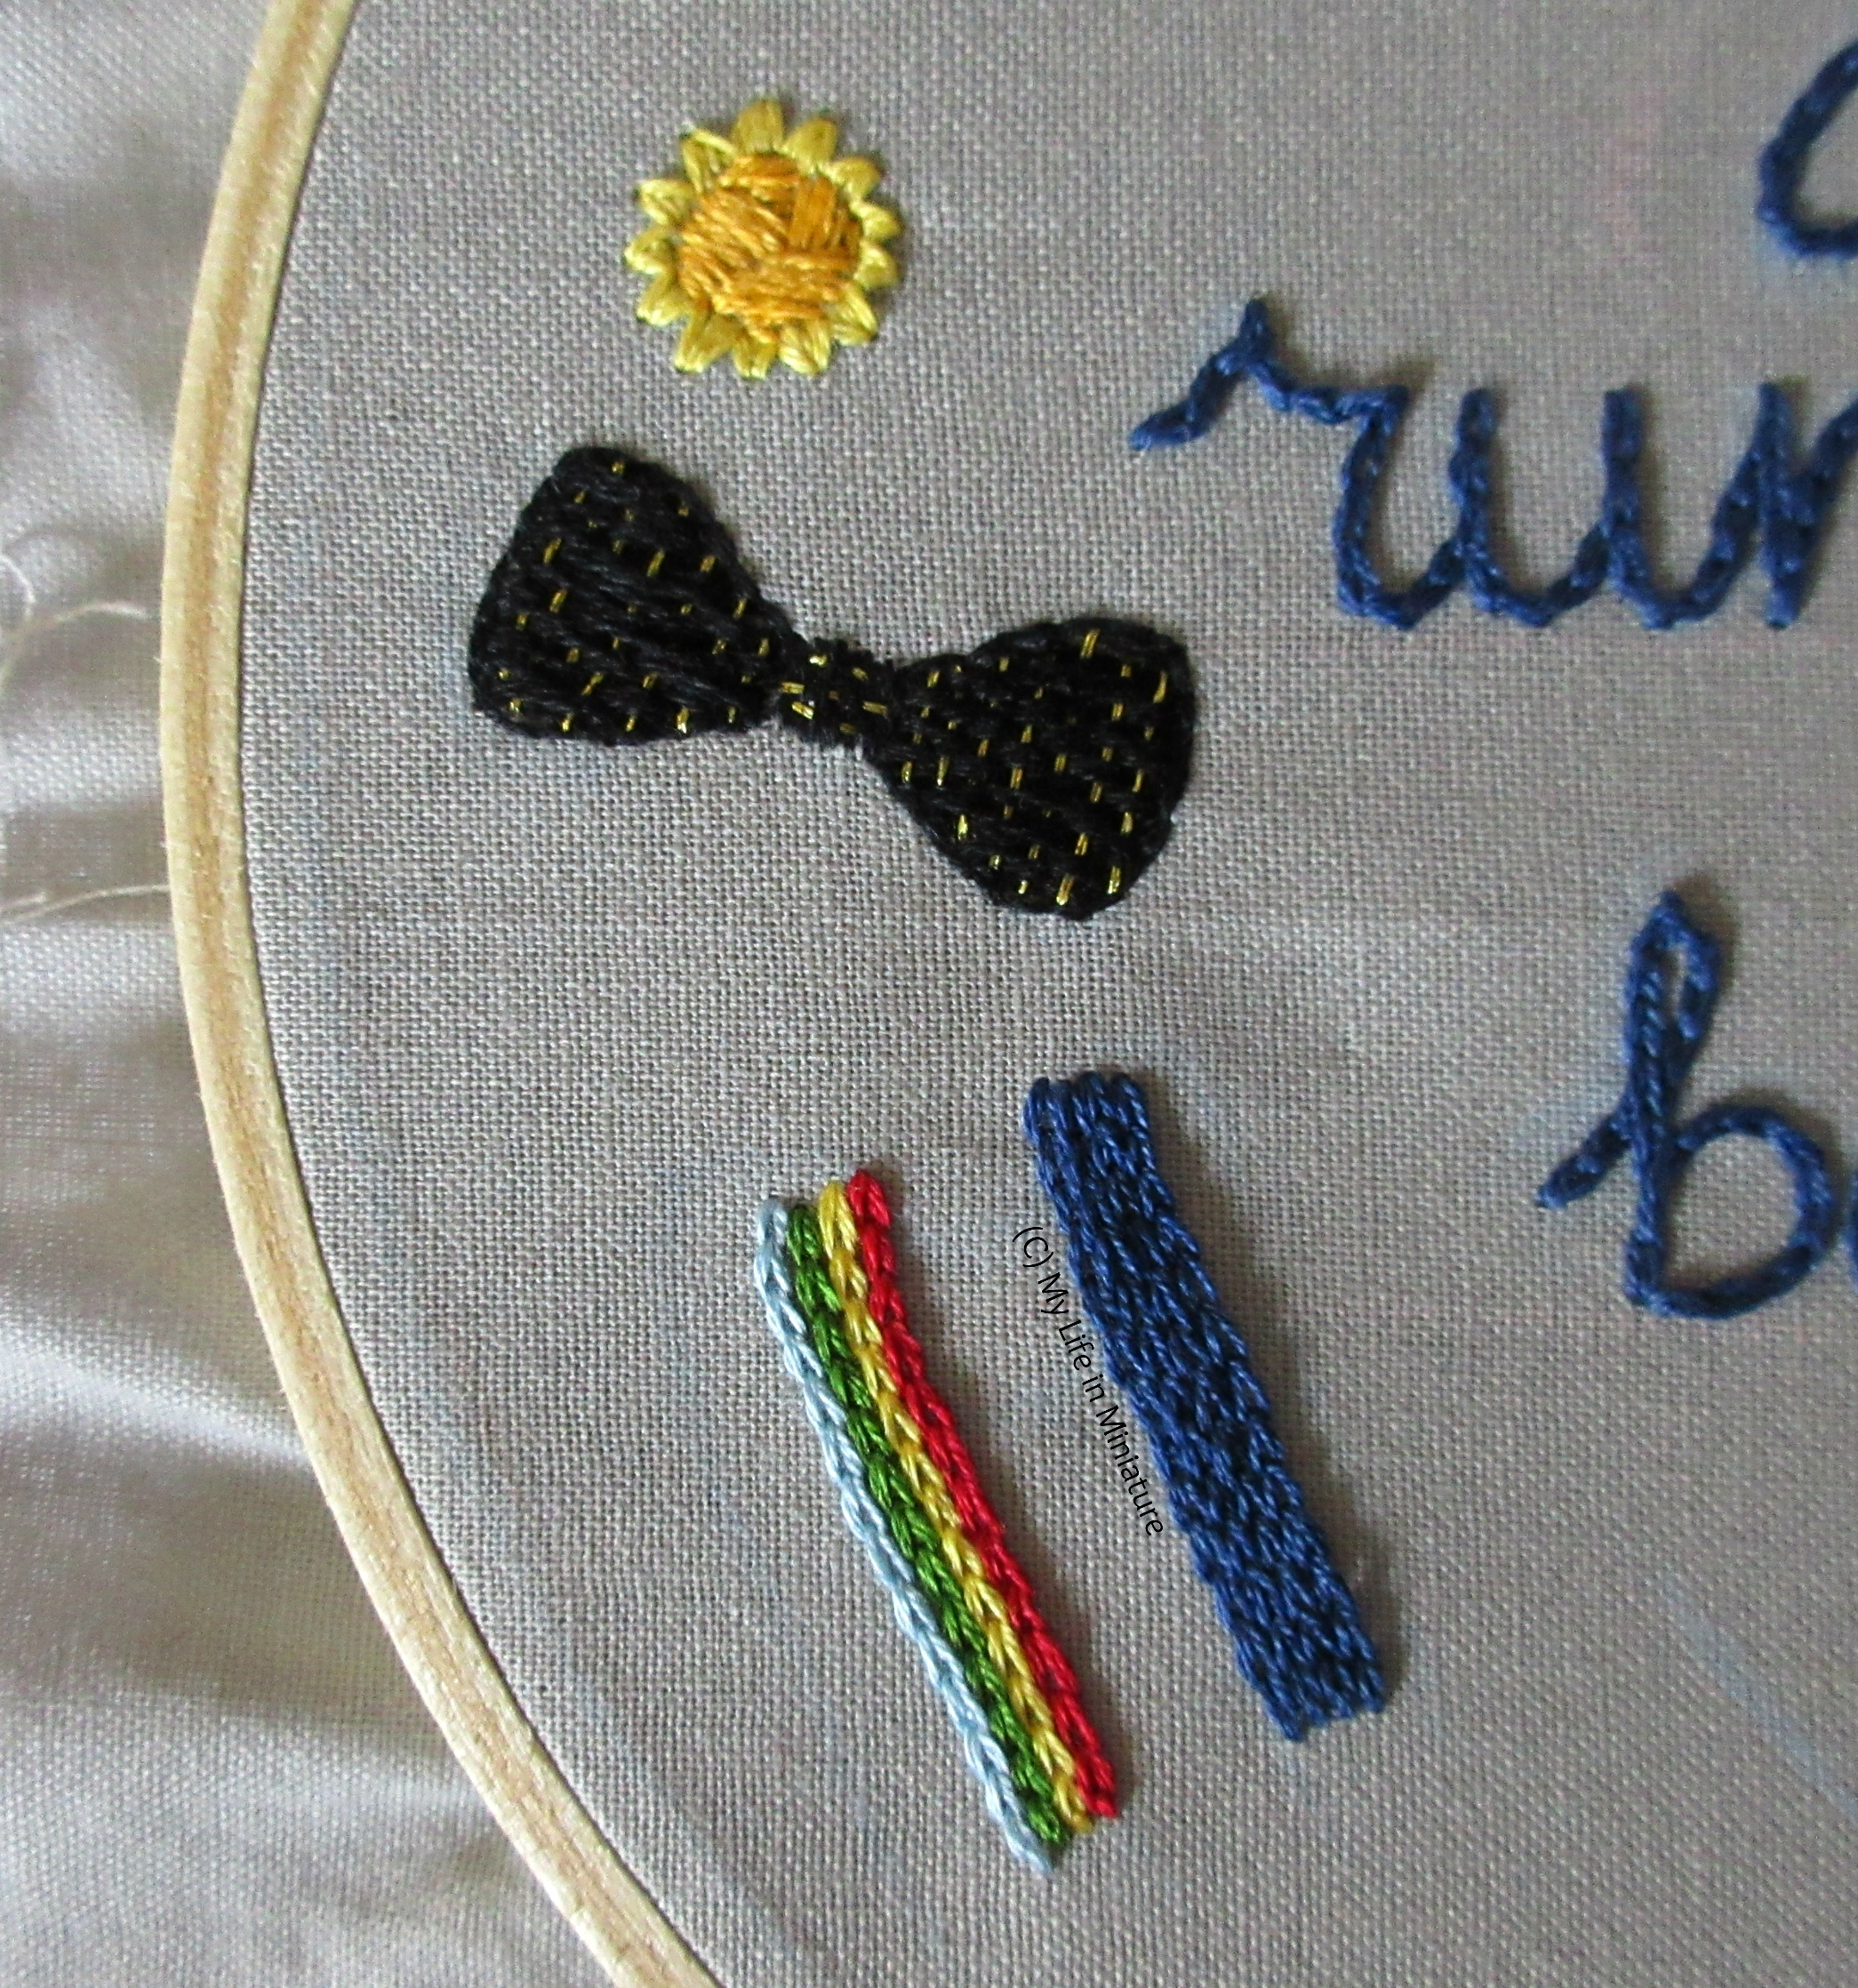 CLose-up of the motif below the daffodil on the hoop. It's a bow tie, stitched in black satin stitch that has been woven through with metallic gold thread.